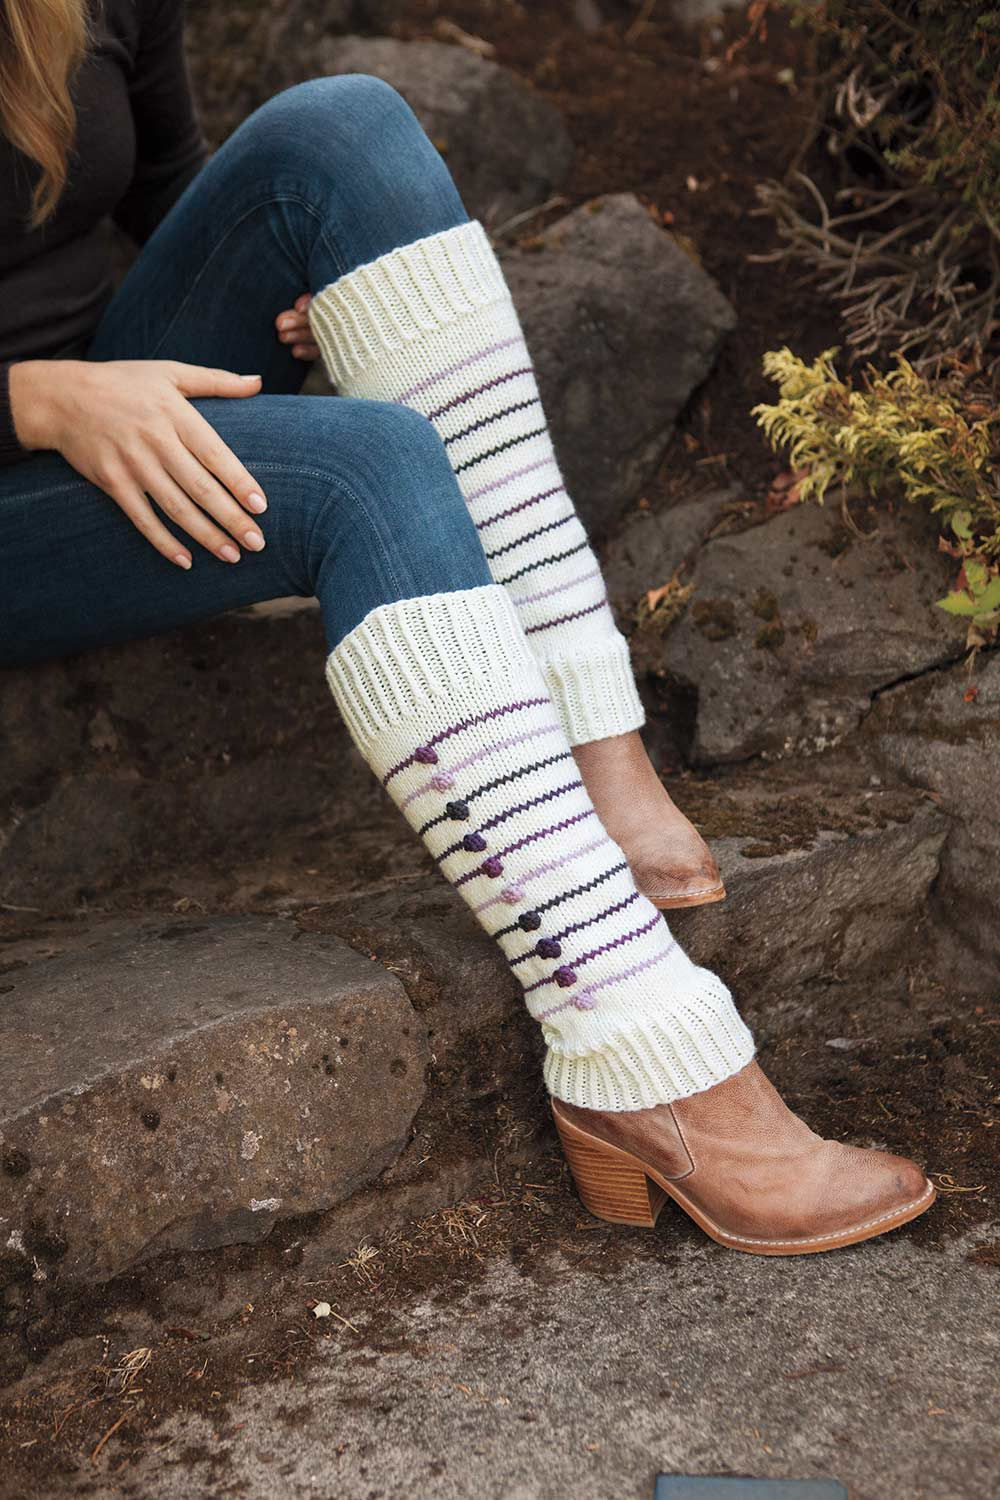 Leg warmers with colourful stripes and a single column of bobbles running down the leg.